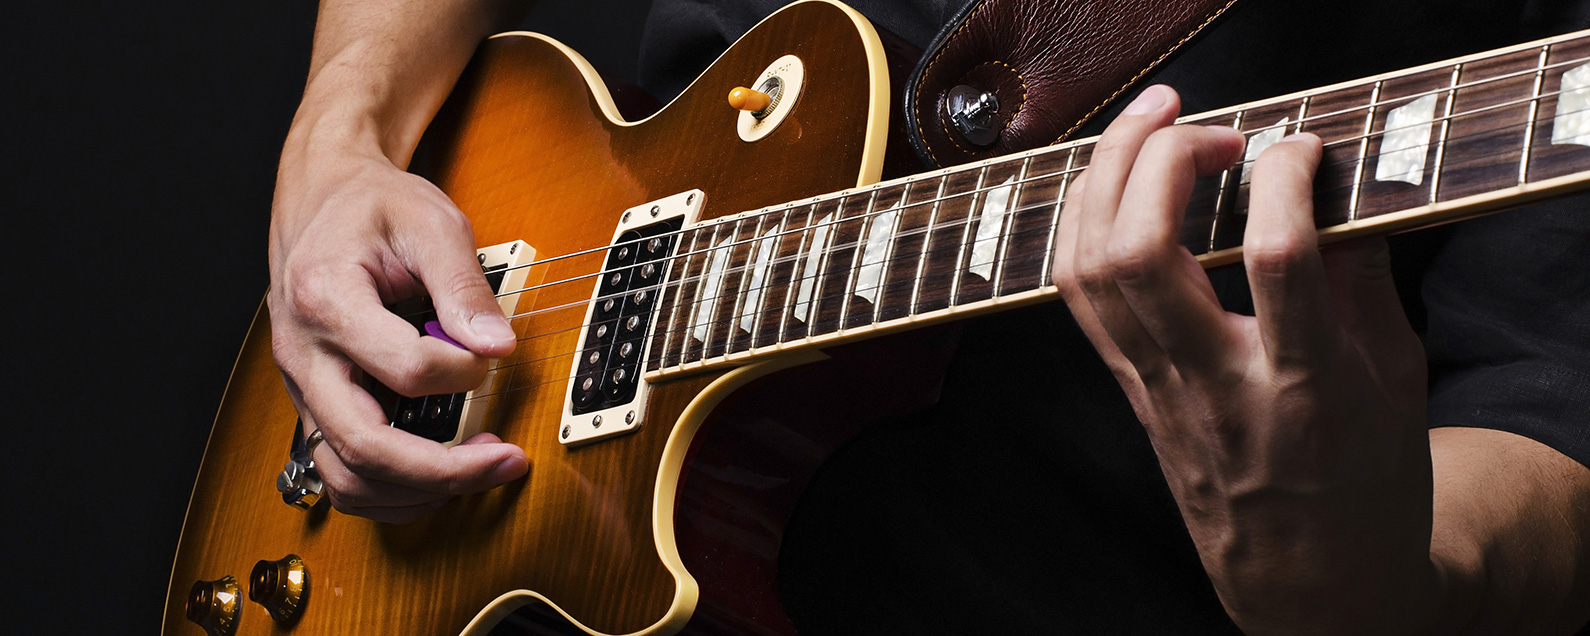 5 Best Ios Music Apps For Guitar Players Iphonelife